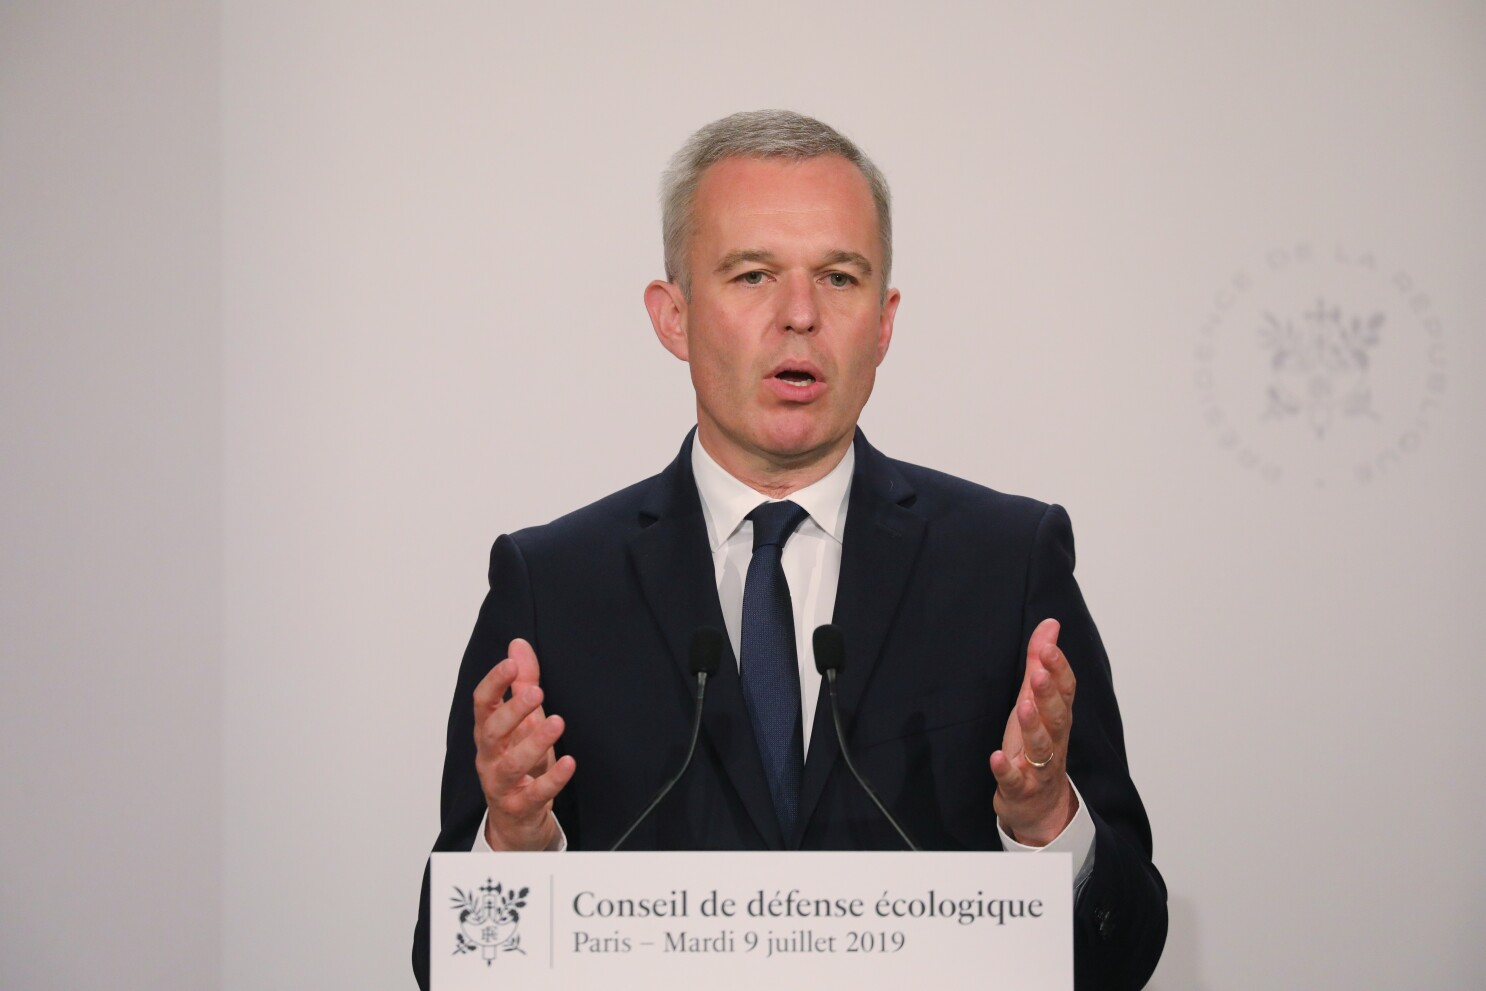 Top French minister resigns after reports of lavish lifestyle - Los Angeles Times